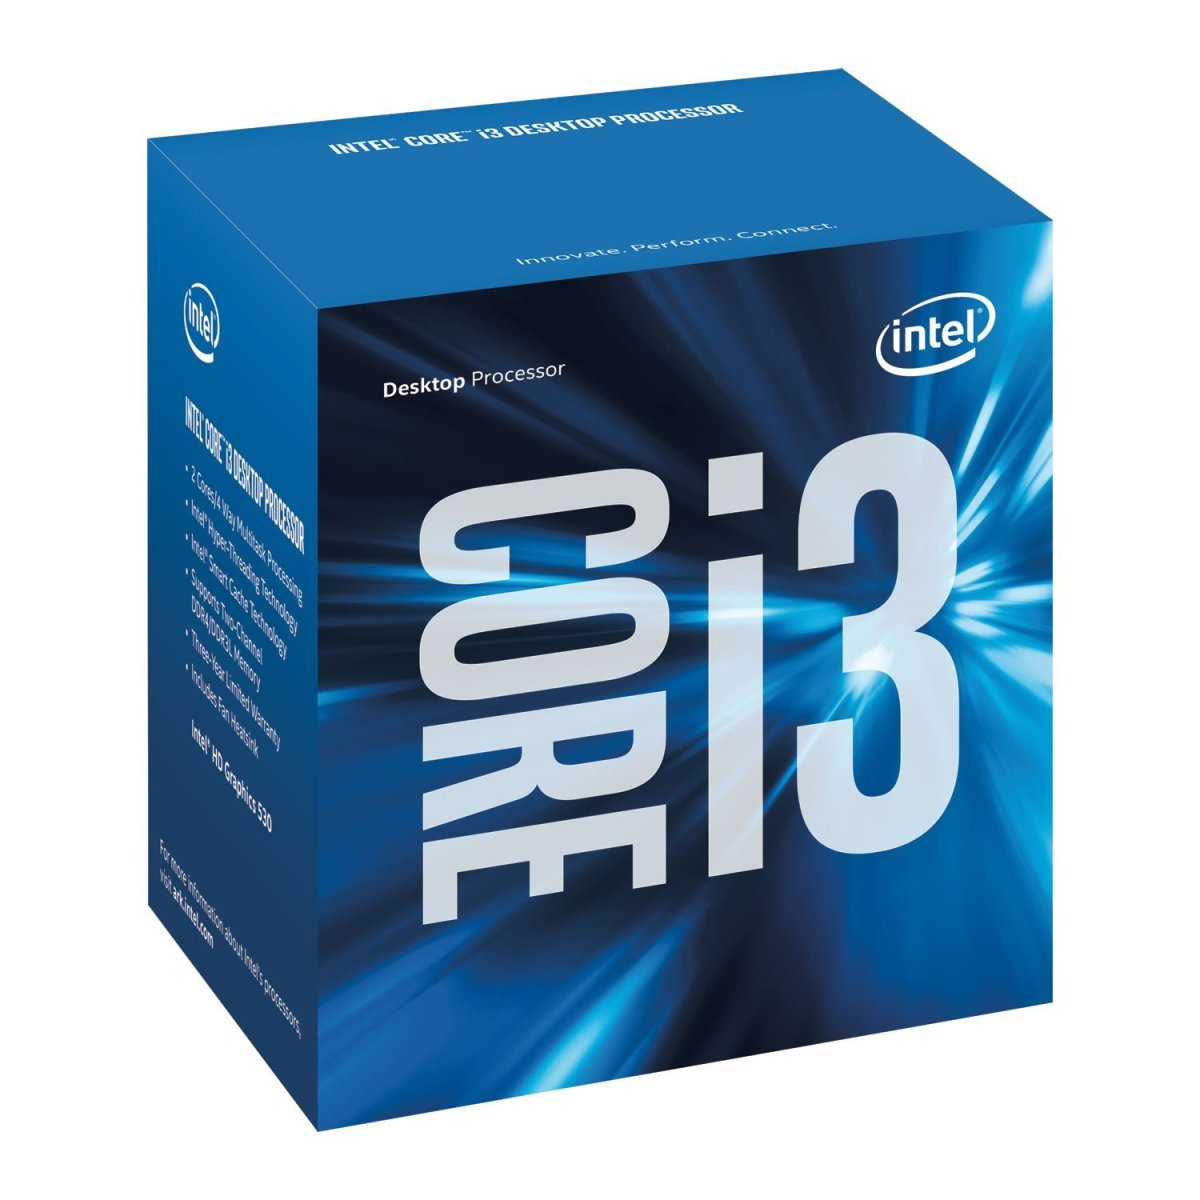 The i3-7100 makes gains vs. Intel's previous Skylake i3-6100 and comes in at a similar price.